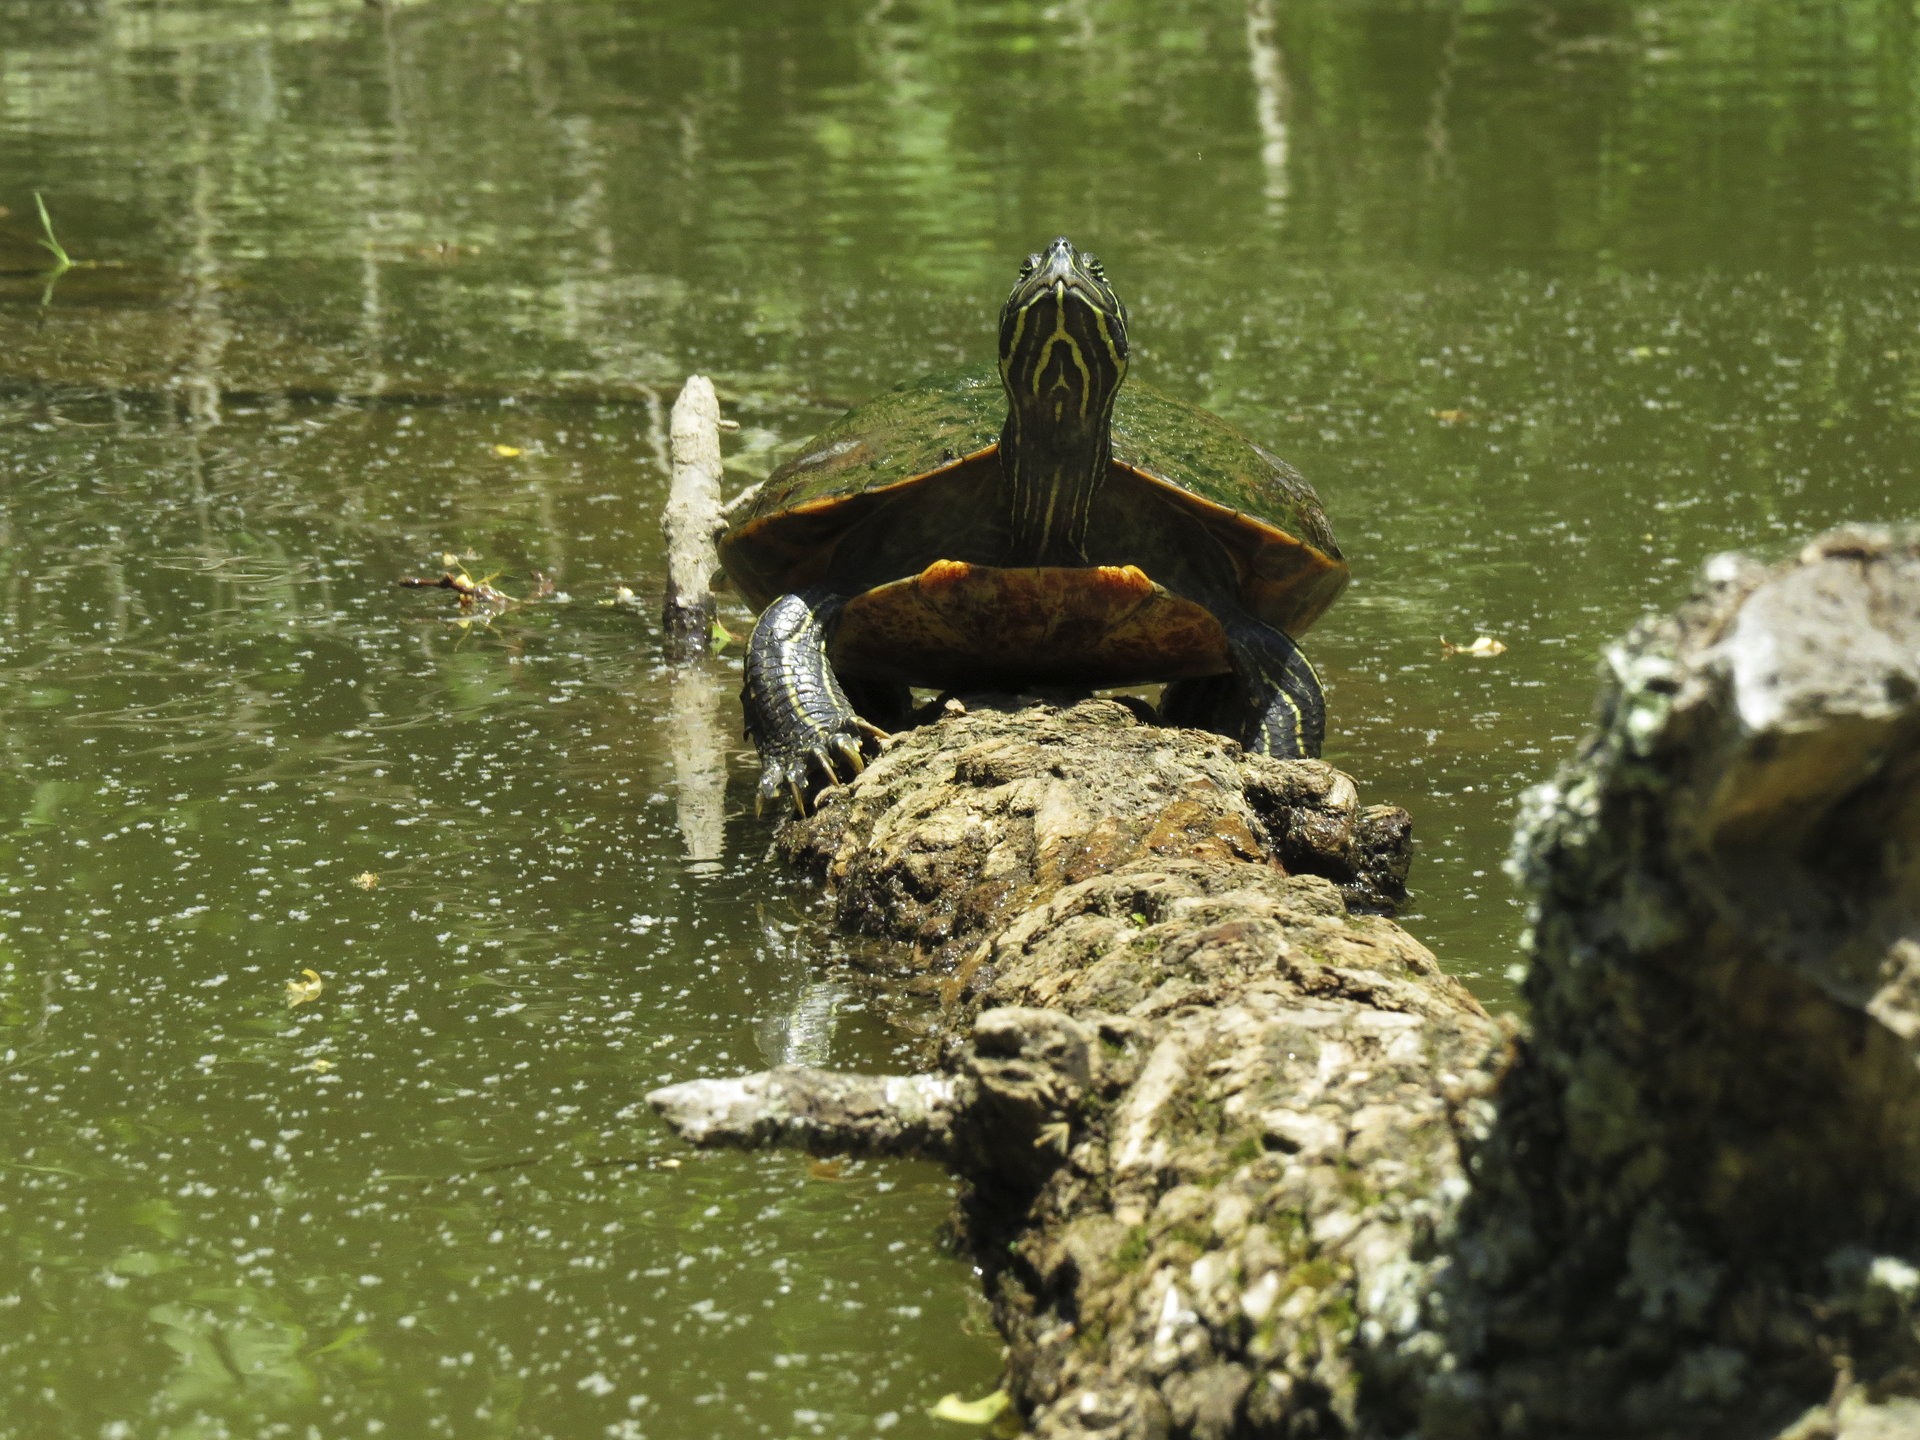 turtle maryland nature water outdoors